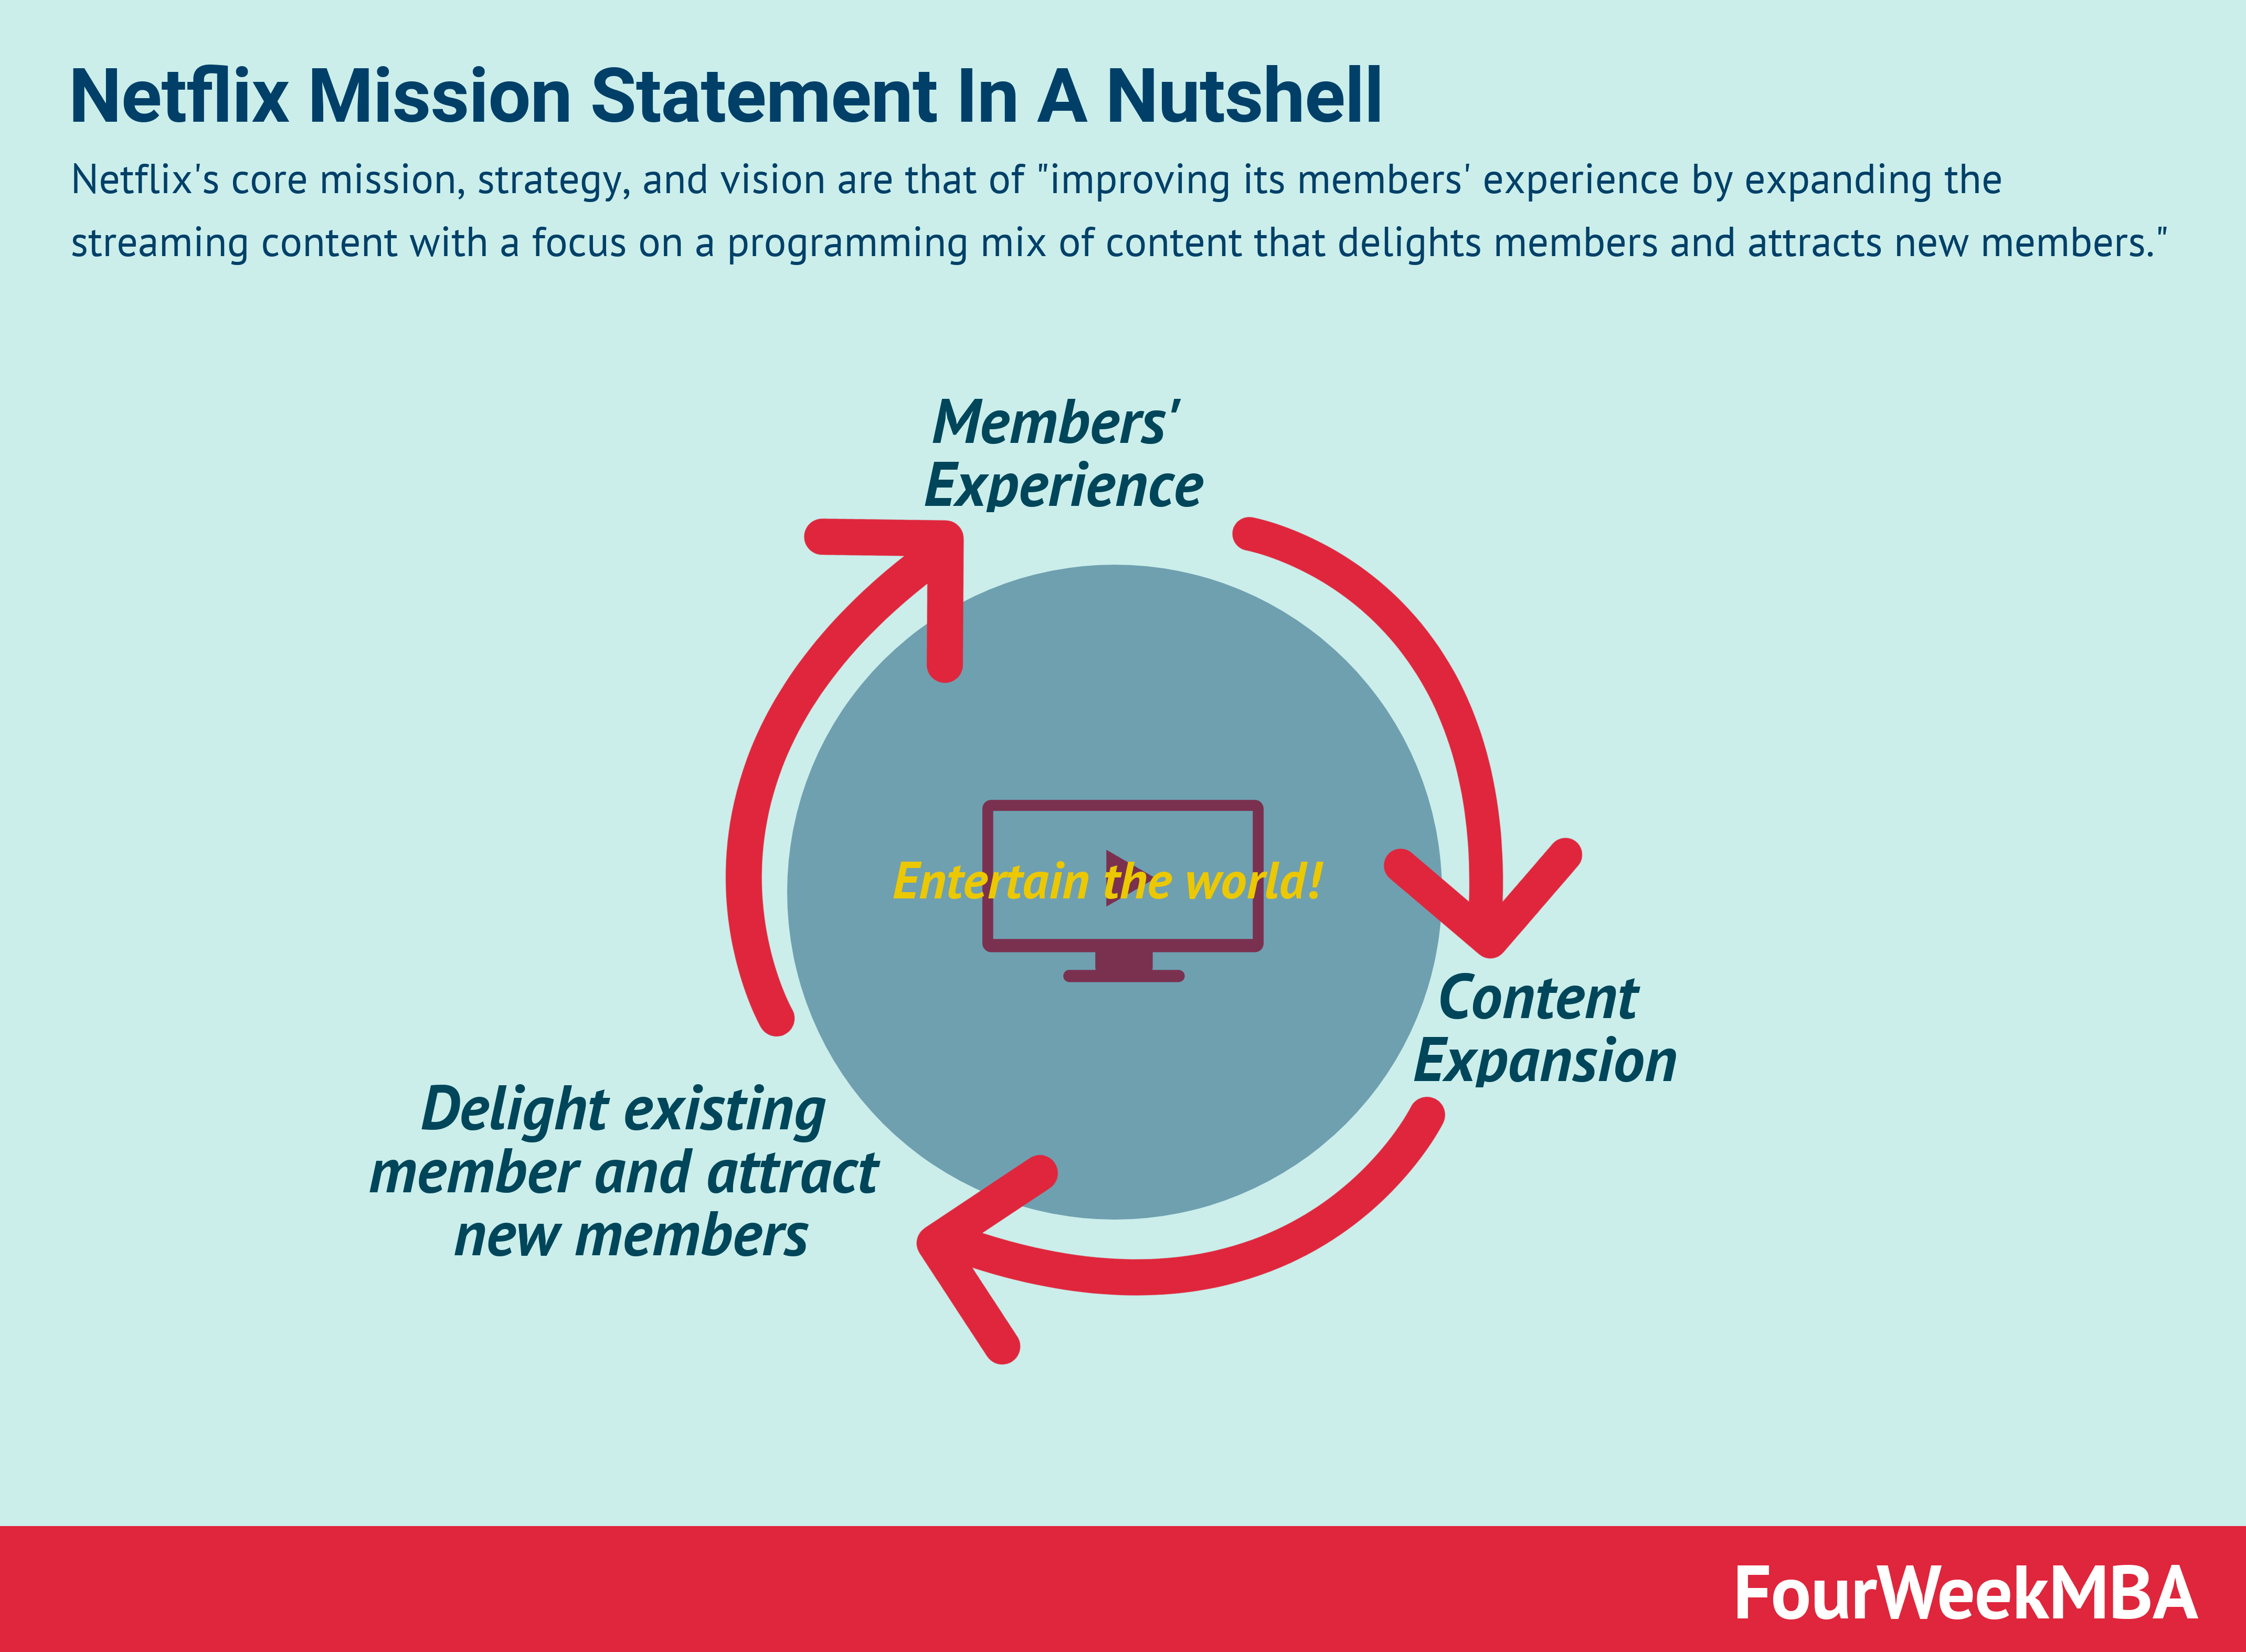 netflix-vision-statement-mission-statement